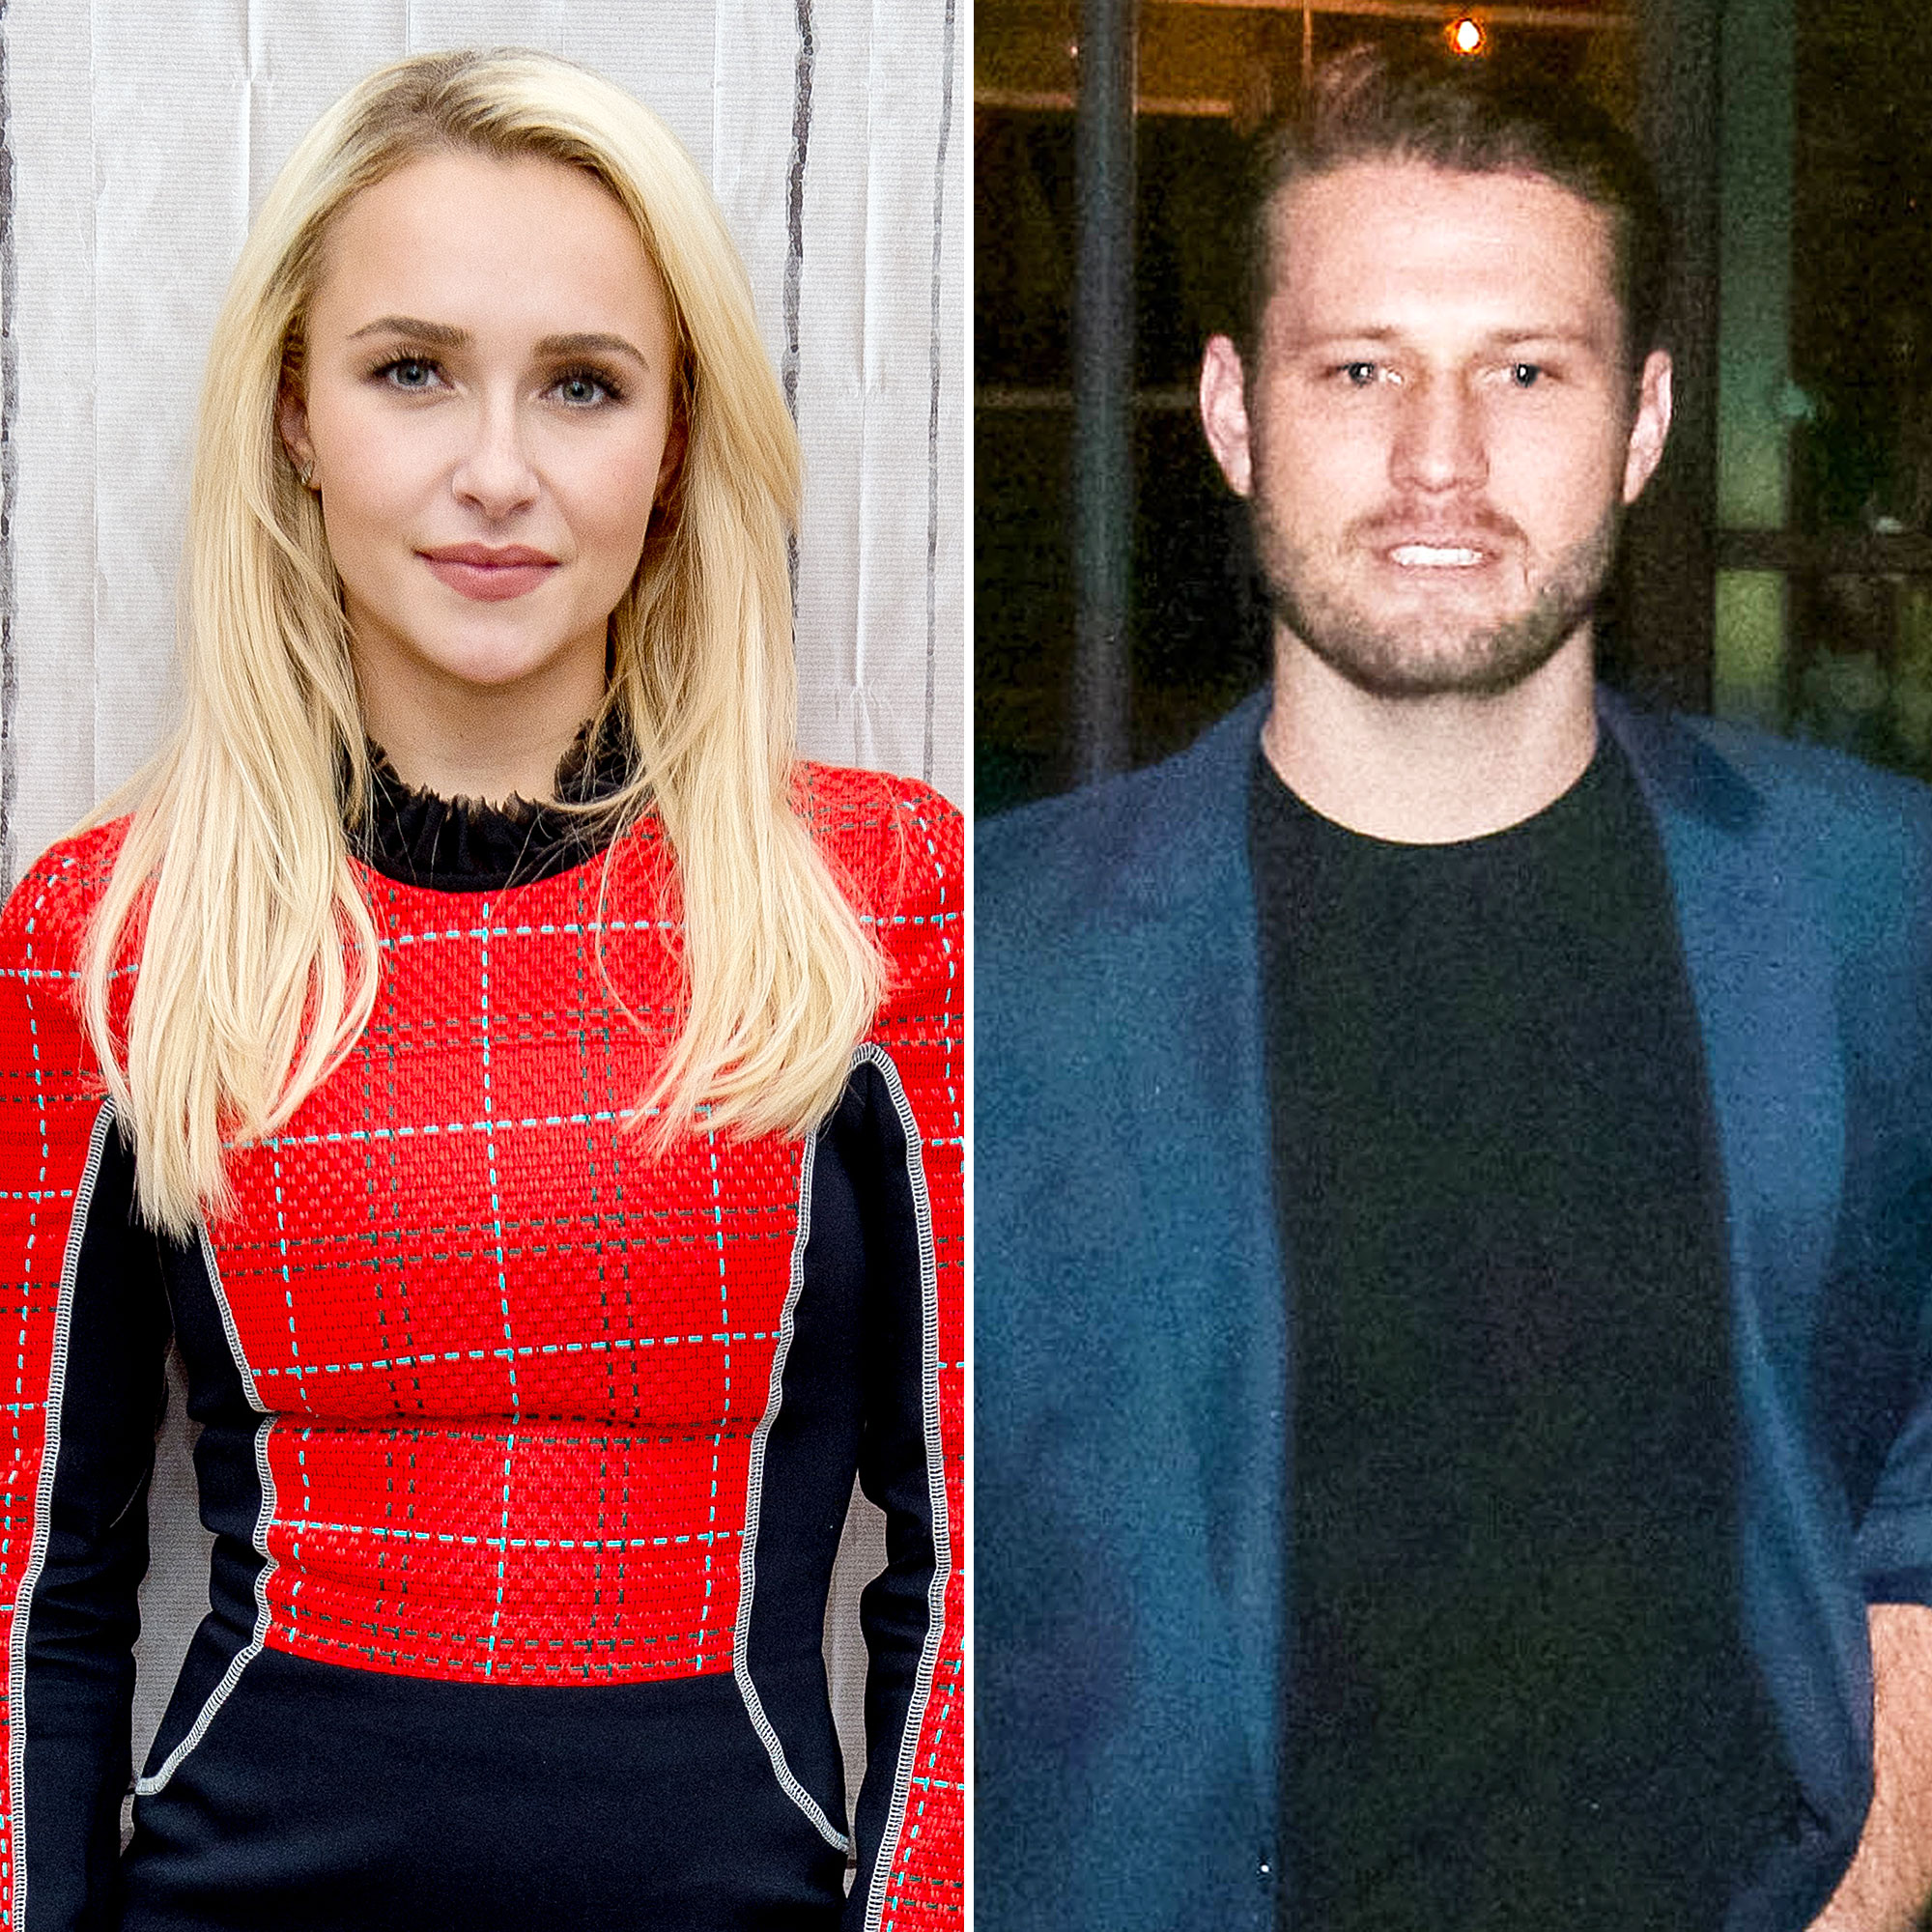 Hayden Panettiere Boyfriend Brian Hickerson Arrested Domestic Violence